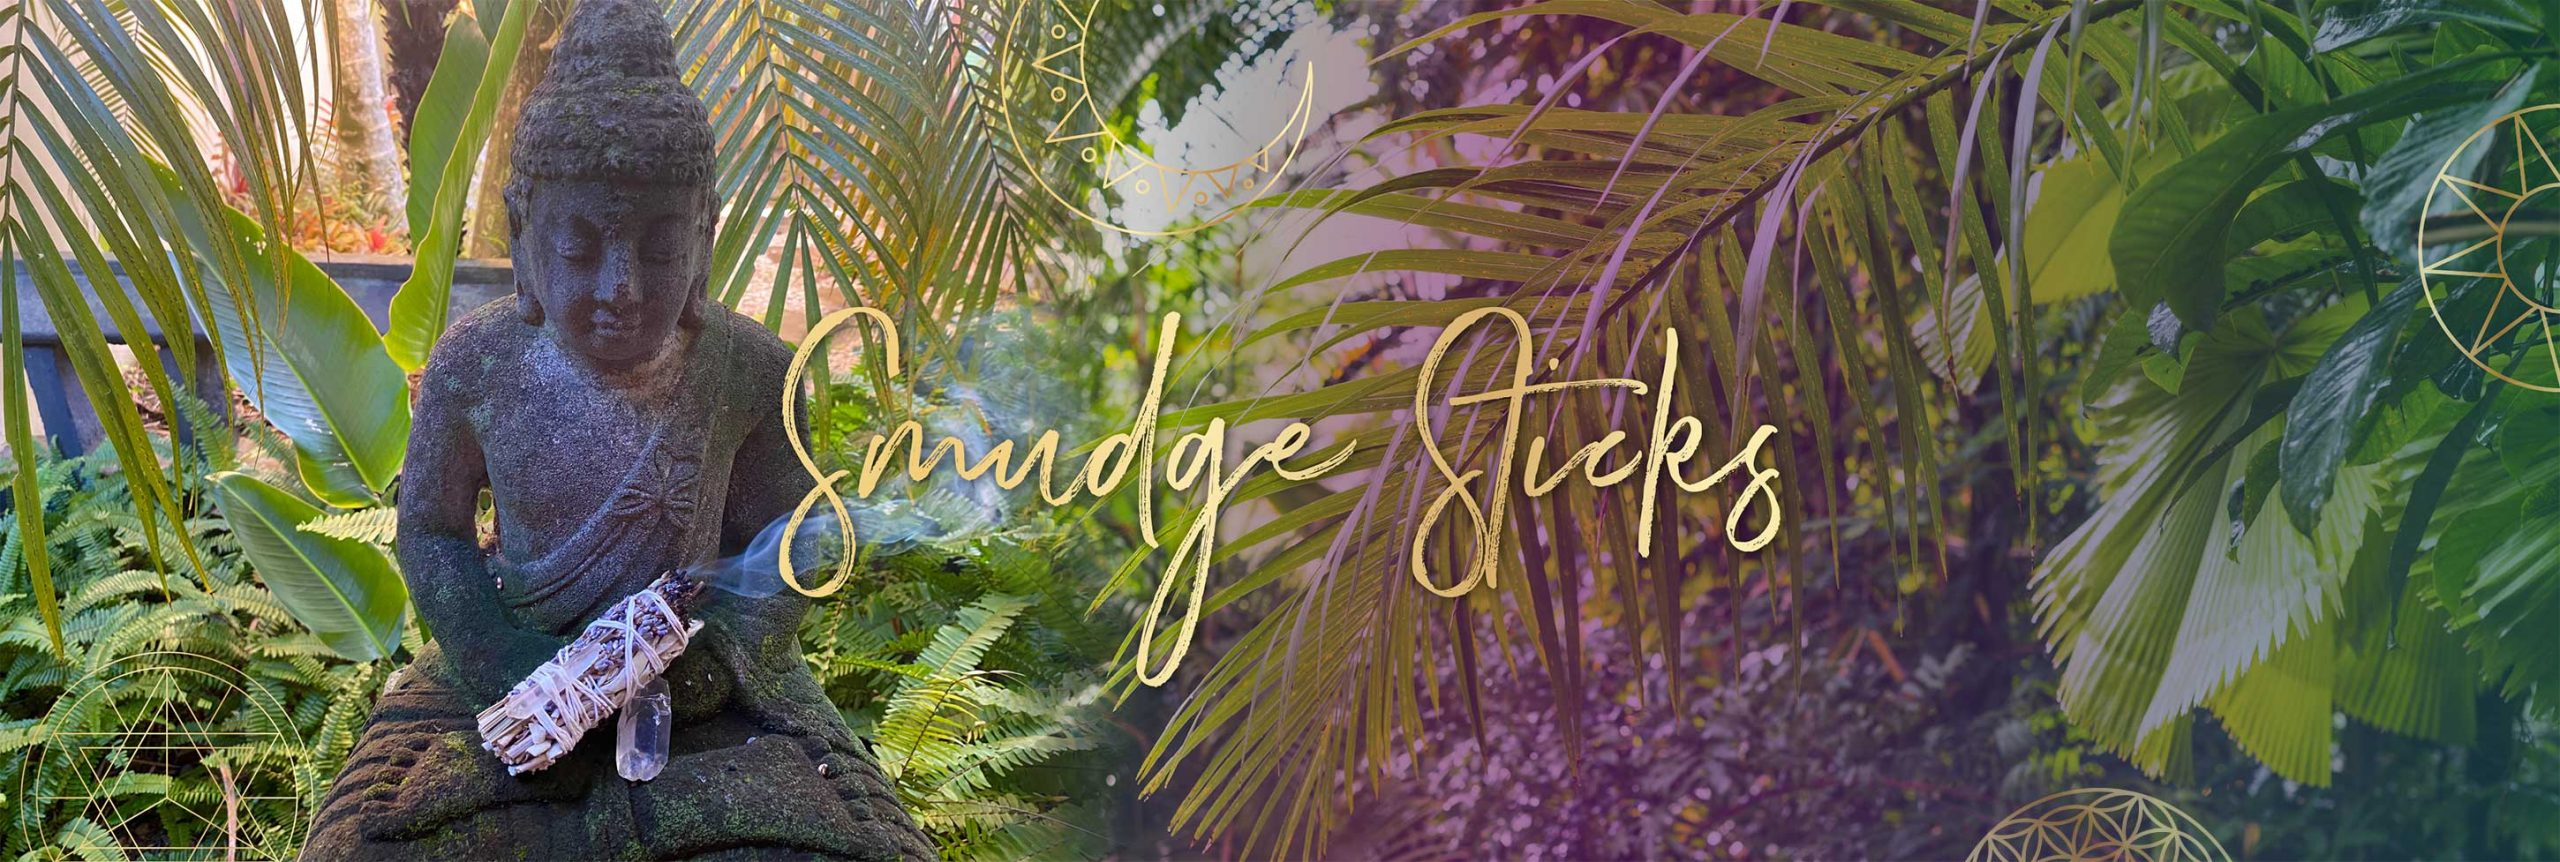 smudge-stick-banner